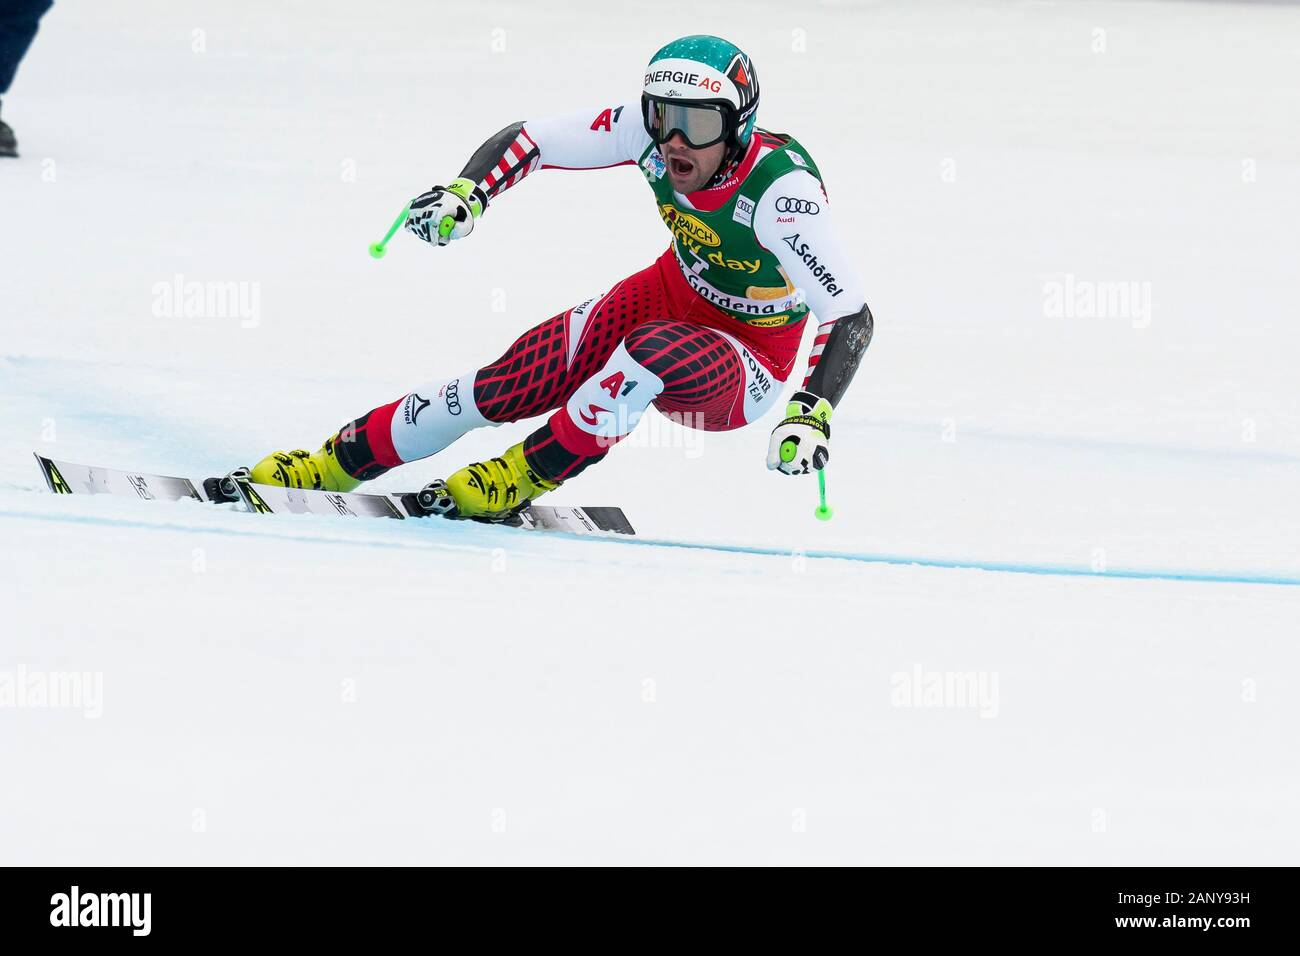 Val Gardena, Italy 20 December 2019. KRIECHMAYR Vincent during the pre race inspection of the Saslong course for the Audi FIS Alpine Ski World Cup Men Stock Photo